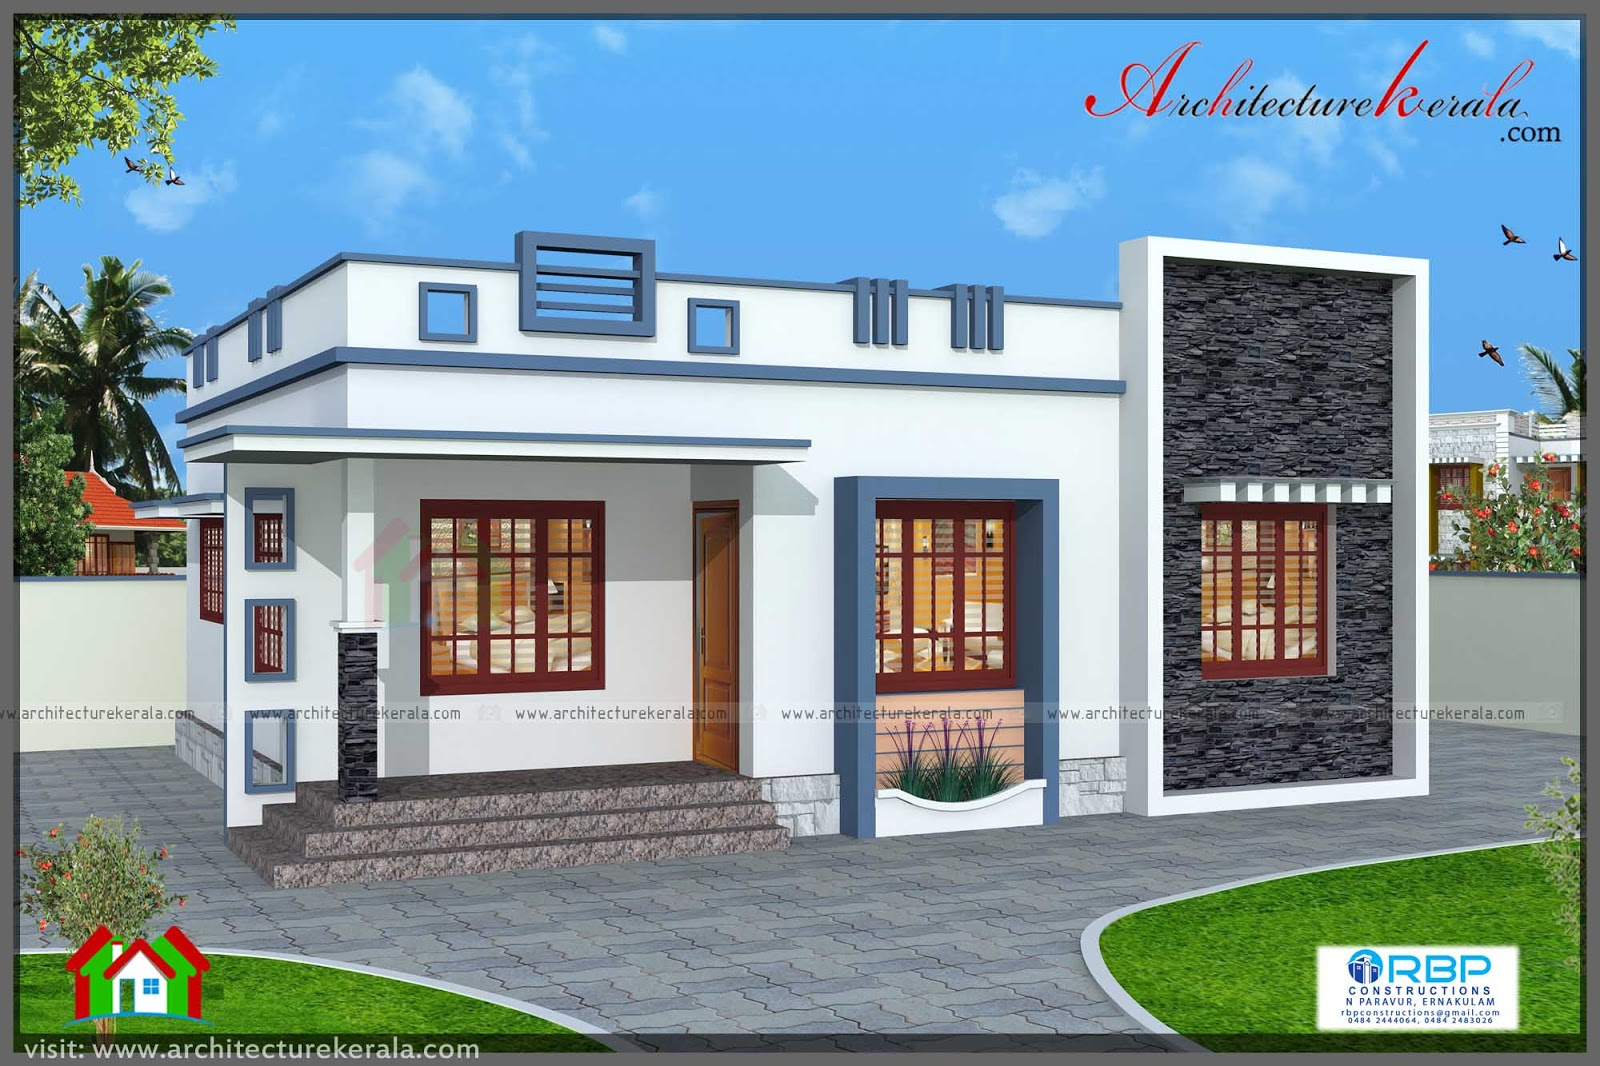 760 square feet 3 bedroom house plan architecture kerala for 3 bedroom design